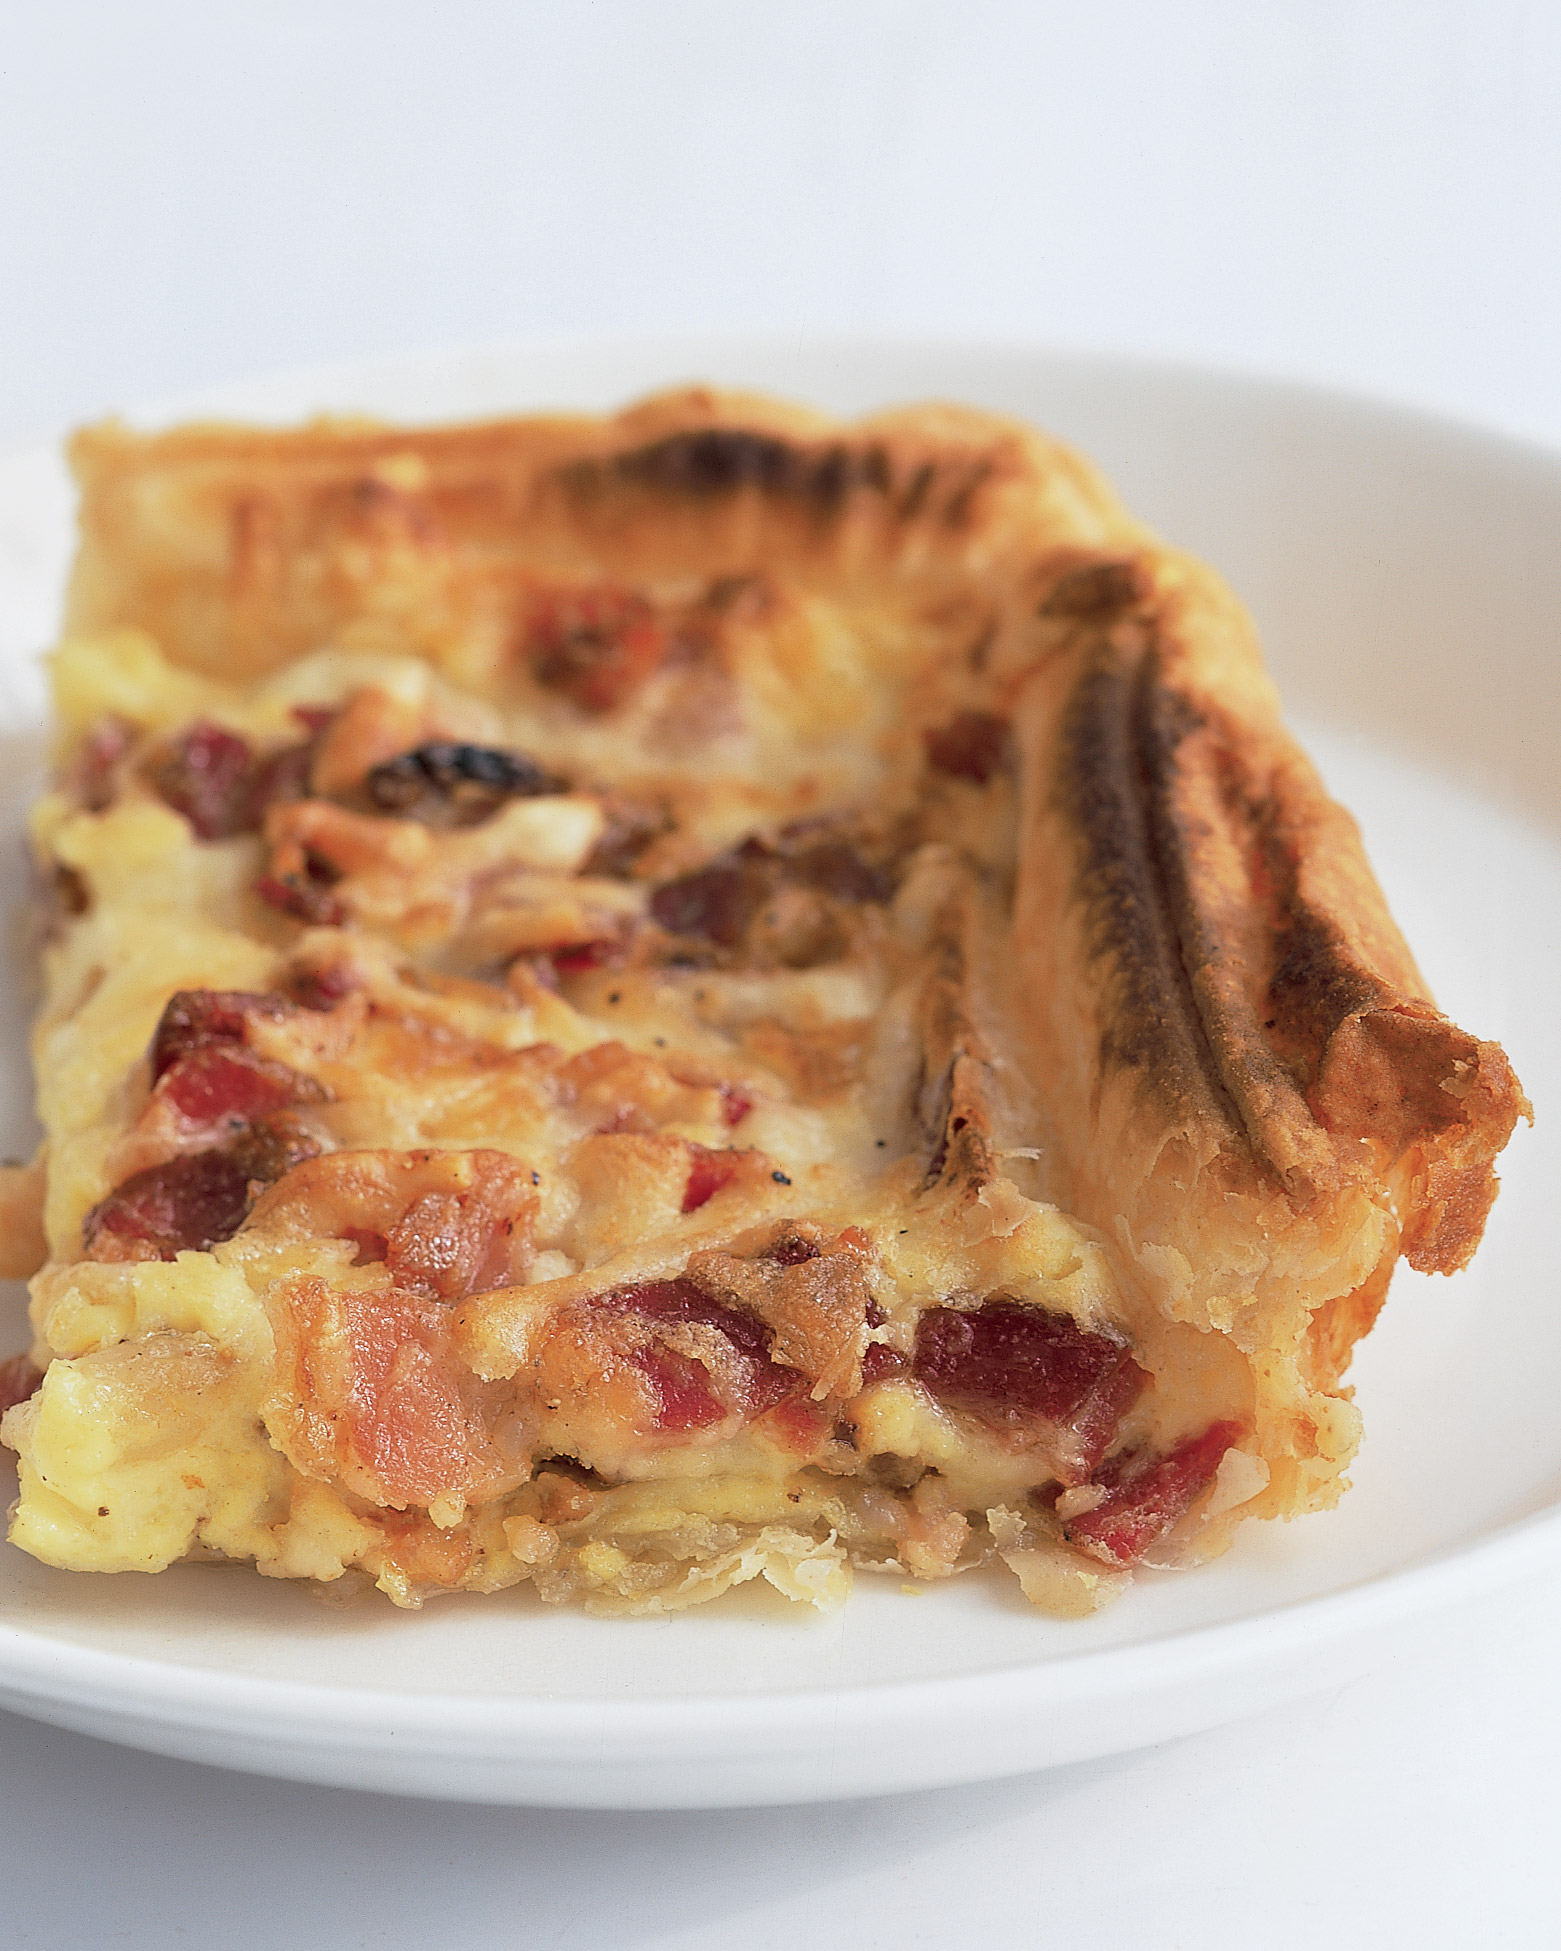 The Sunday: Bacon and Egg Casserole